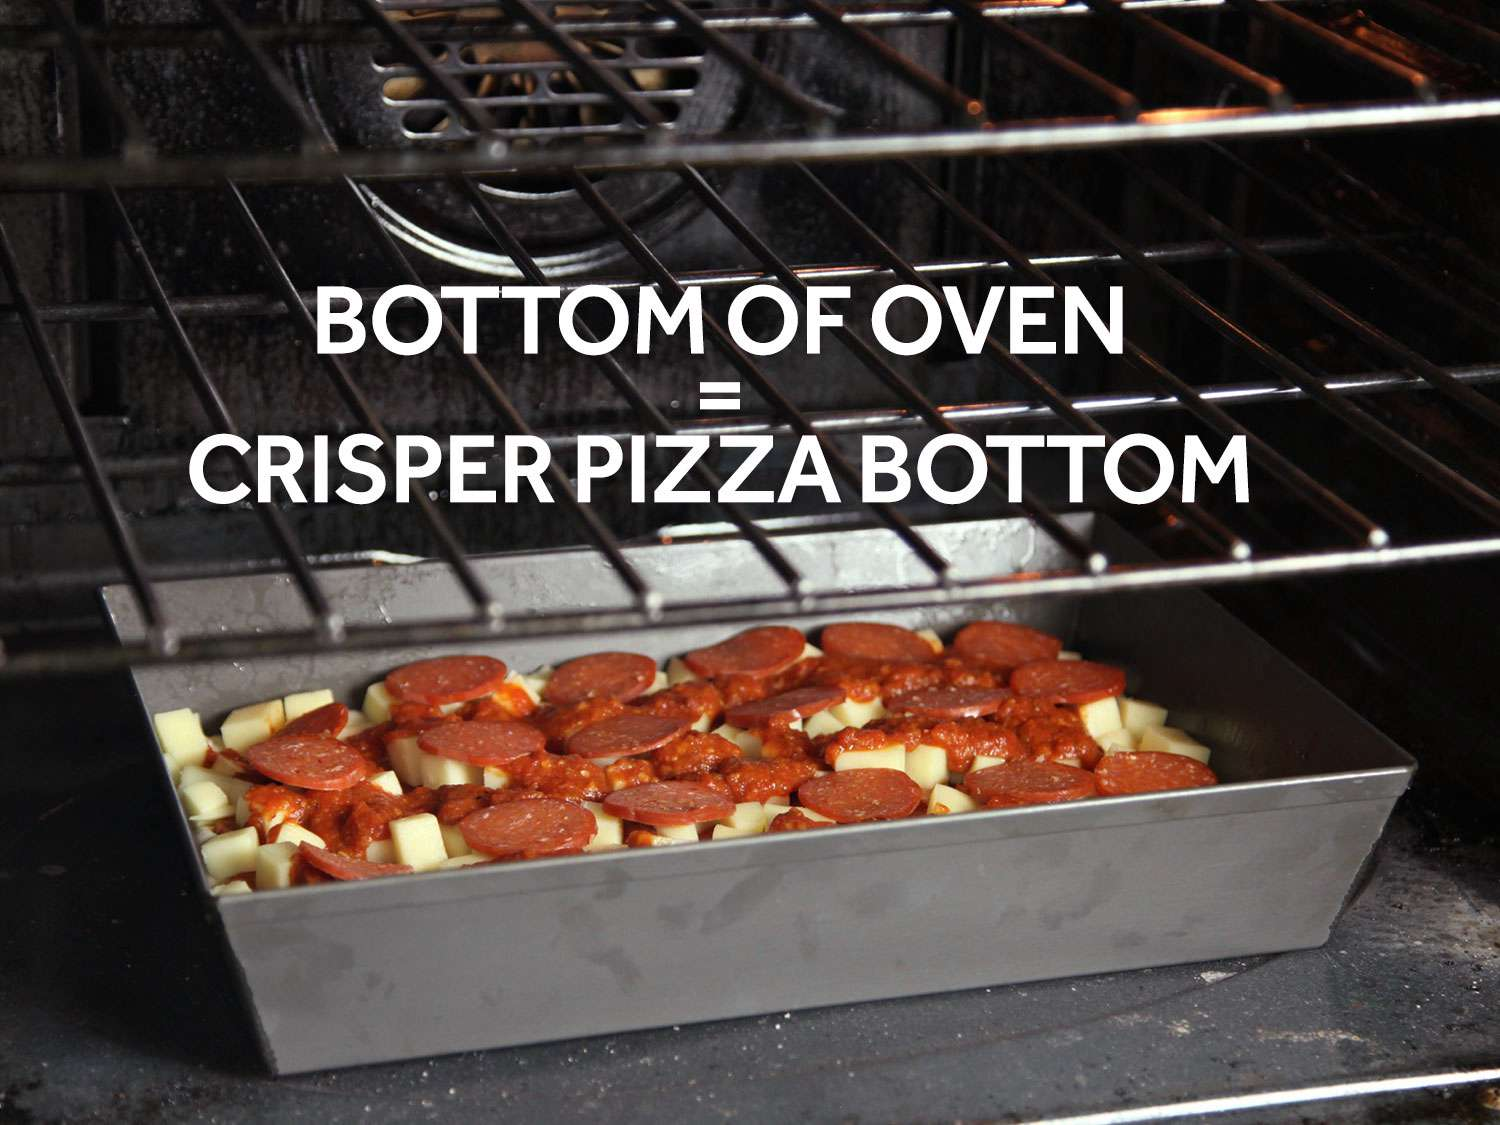 A pan of Detroit-style pizza placed on oven floor